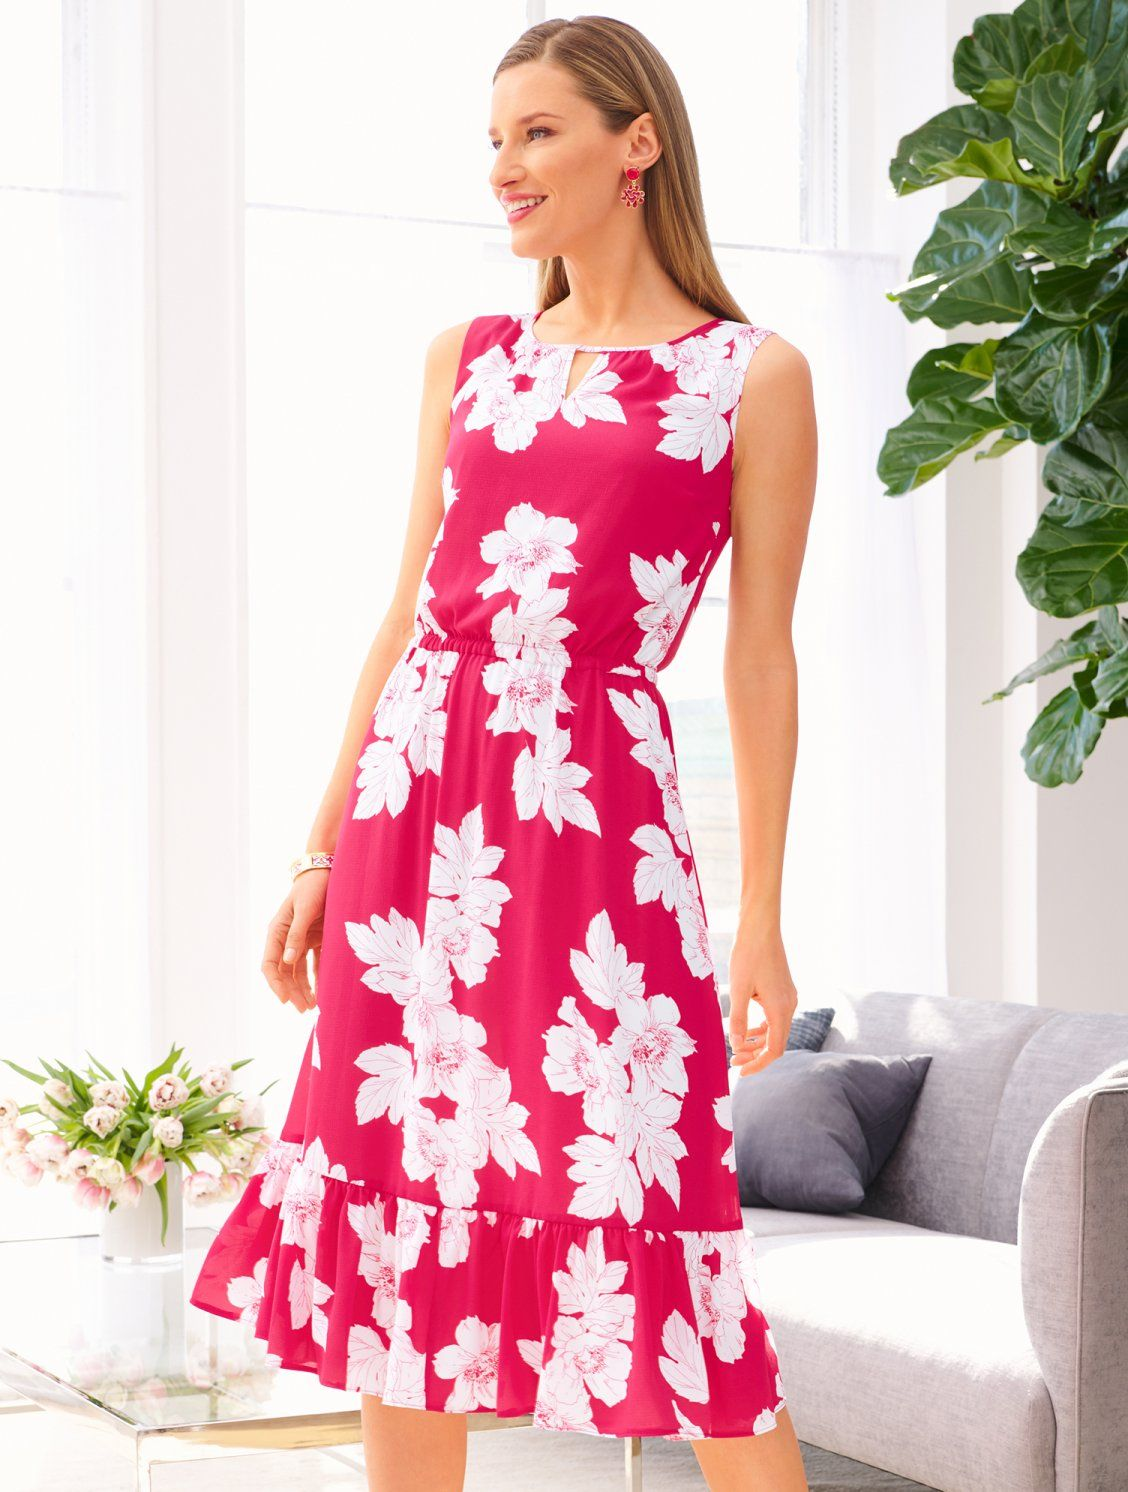 A Flowy Floral Dress Perfect For Dinner On The Town Or A Day Of Shopping The Flounce Hem Adds A Dose Of Fun To This Sof Summer Dresses Dresses Talbots Fashion [ 1492 x 1128 Pixel ]